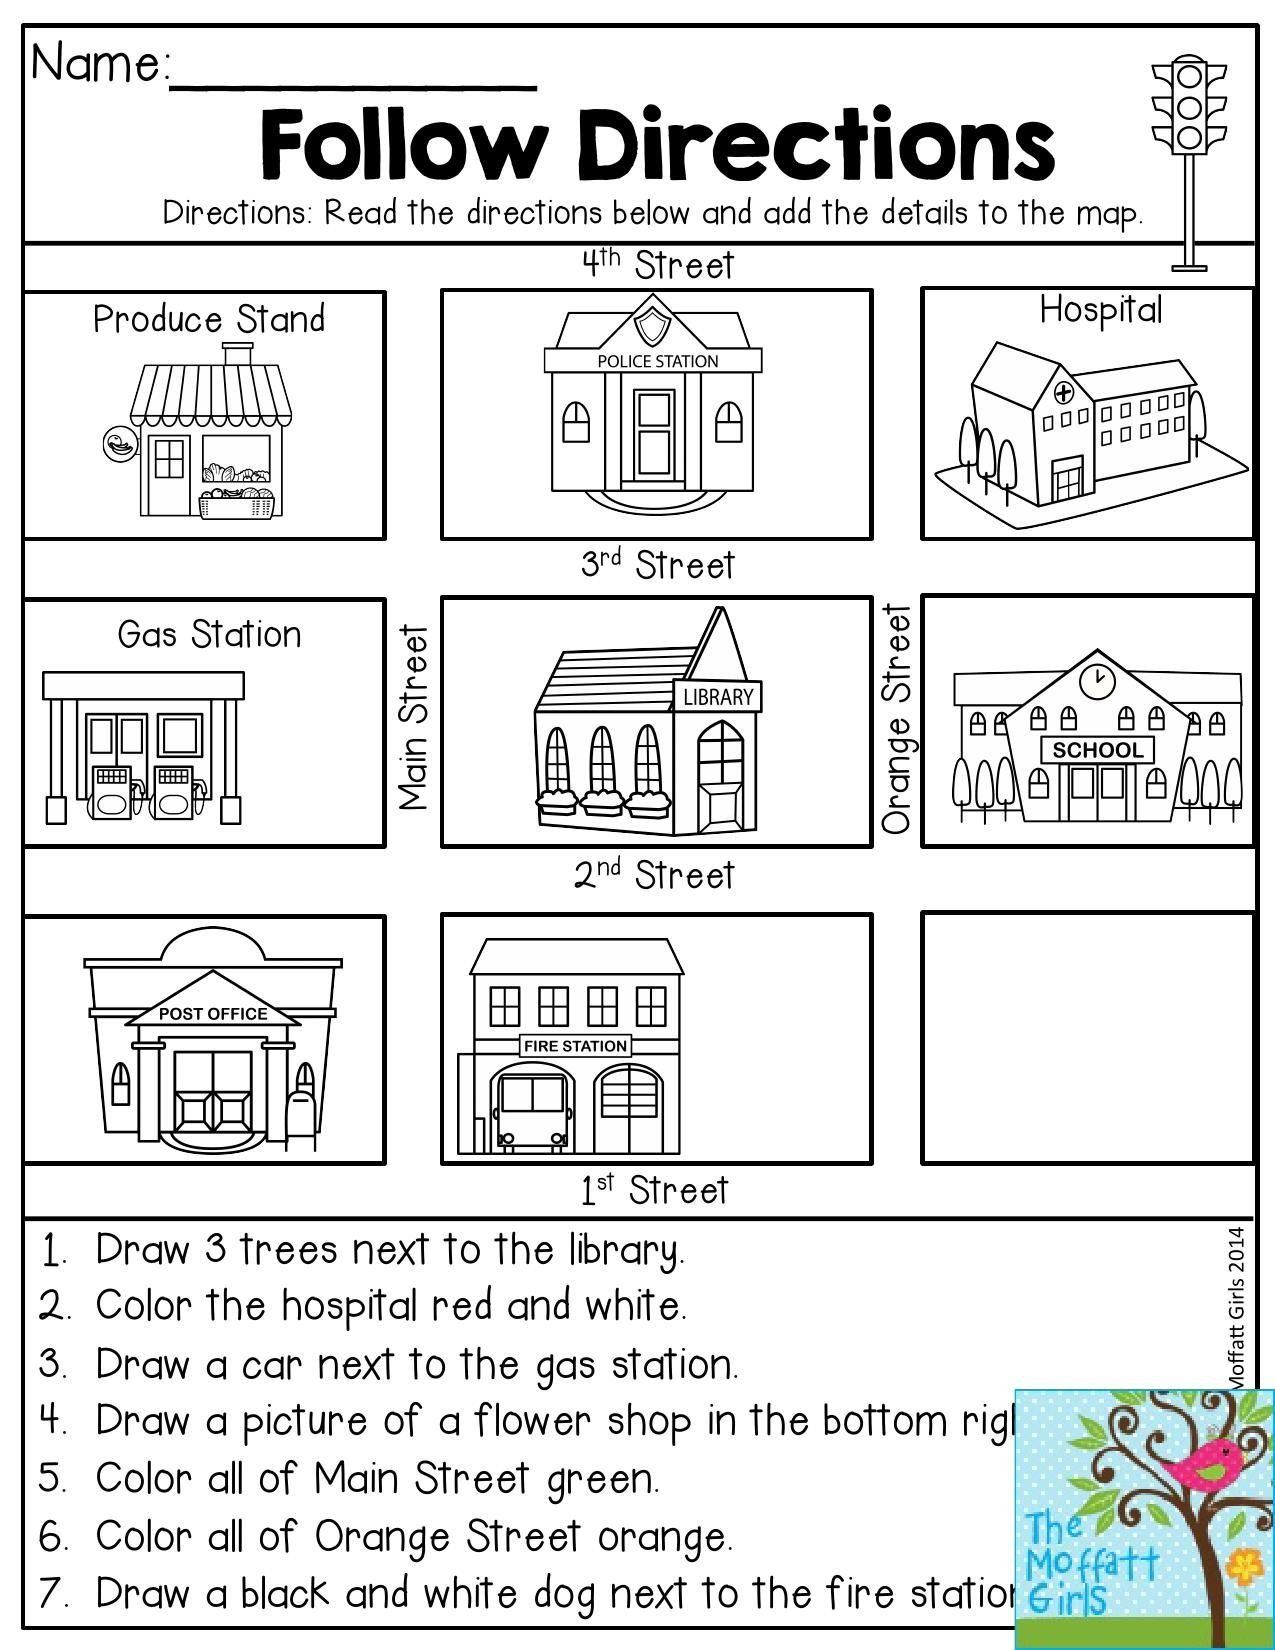 Following 2 Step Directions Worksheets Follow Directions Read The Directions And Add The D Map Skills Worksheets Social Studies Worksheets Geography Worksheets